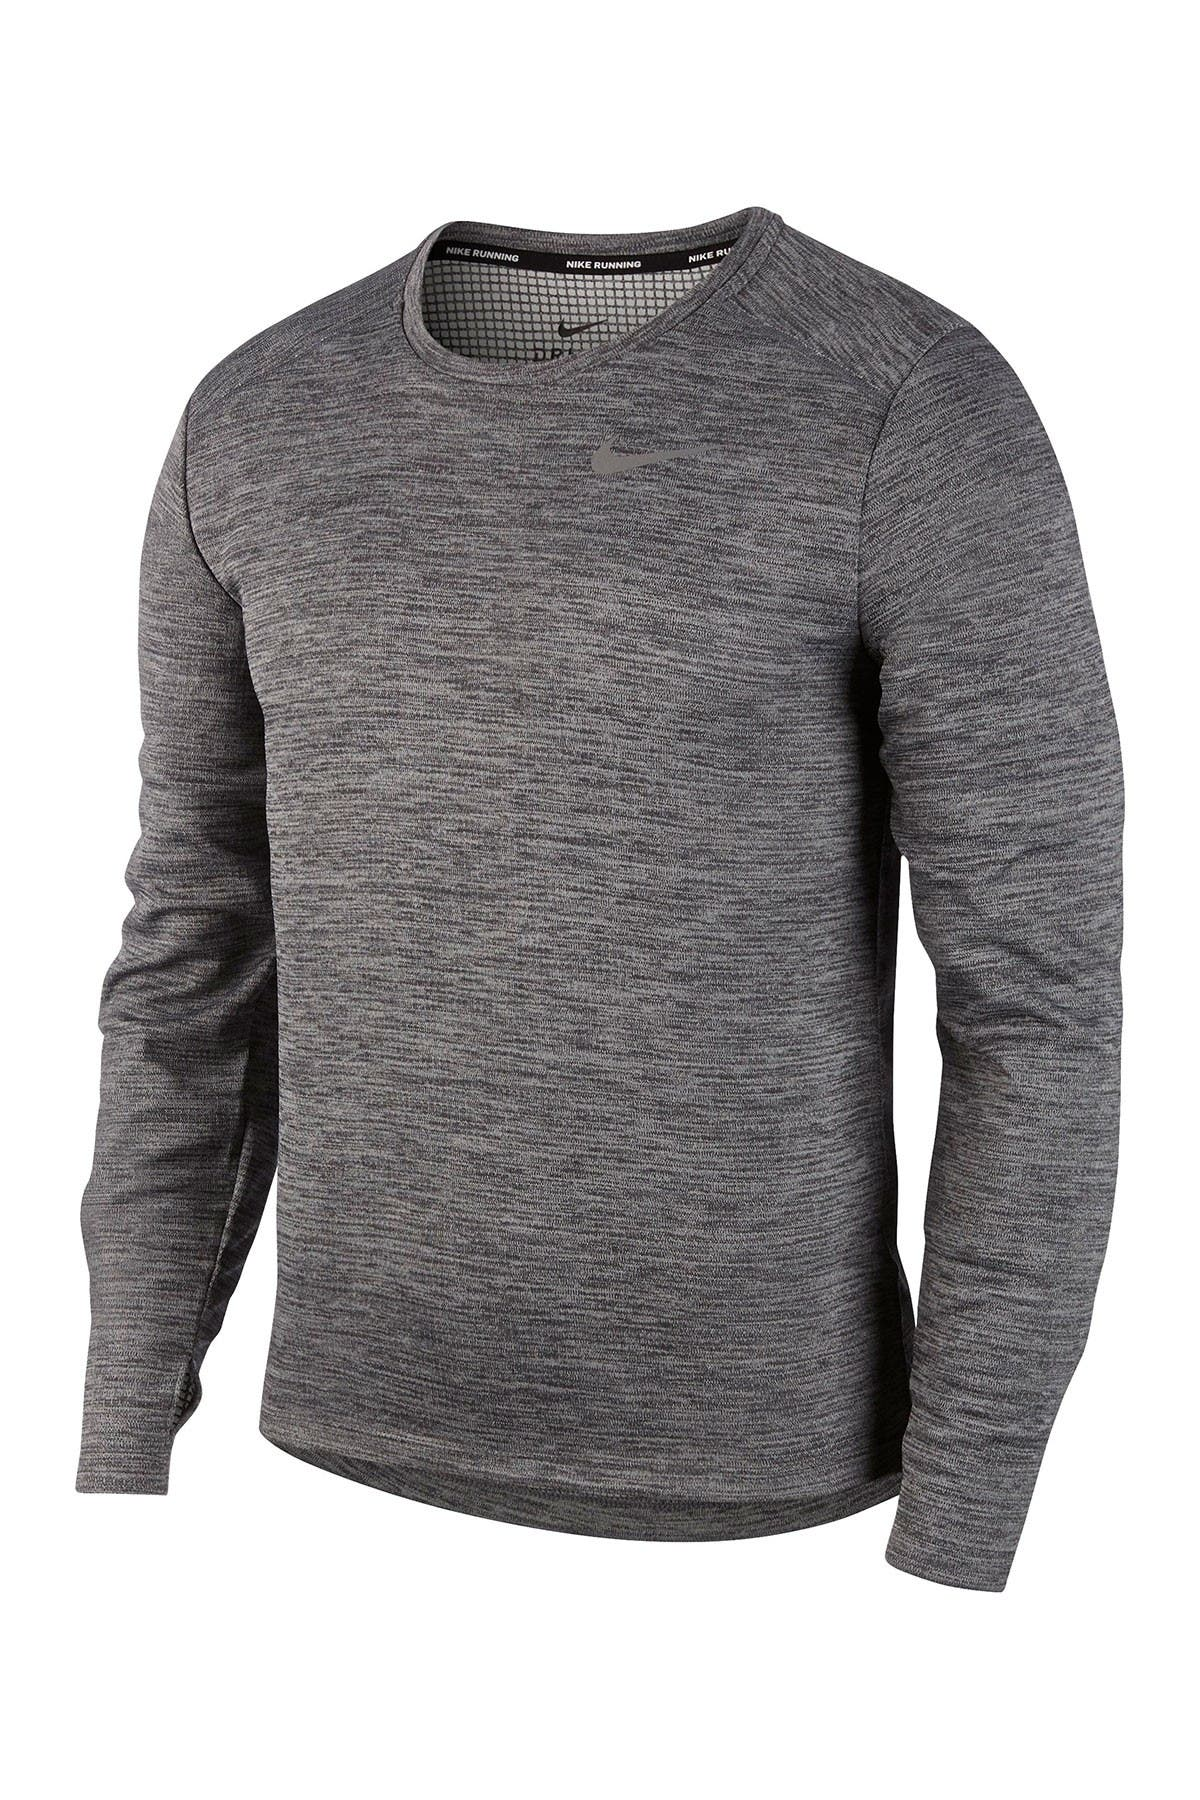 Image of Nike Pacer Dri-FIT Long Sleeve Running T-Shirt